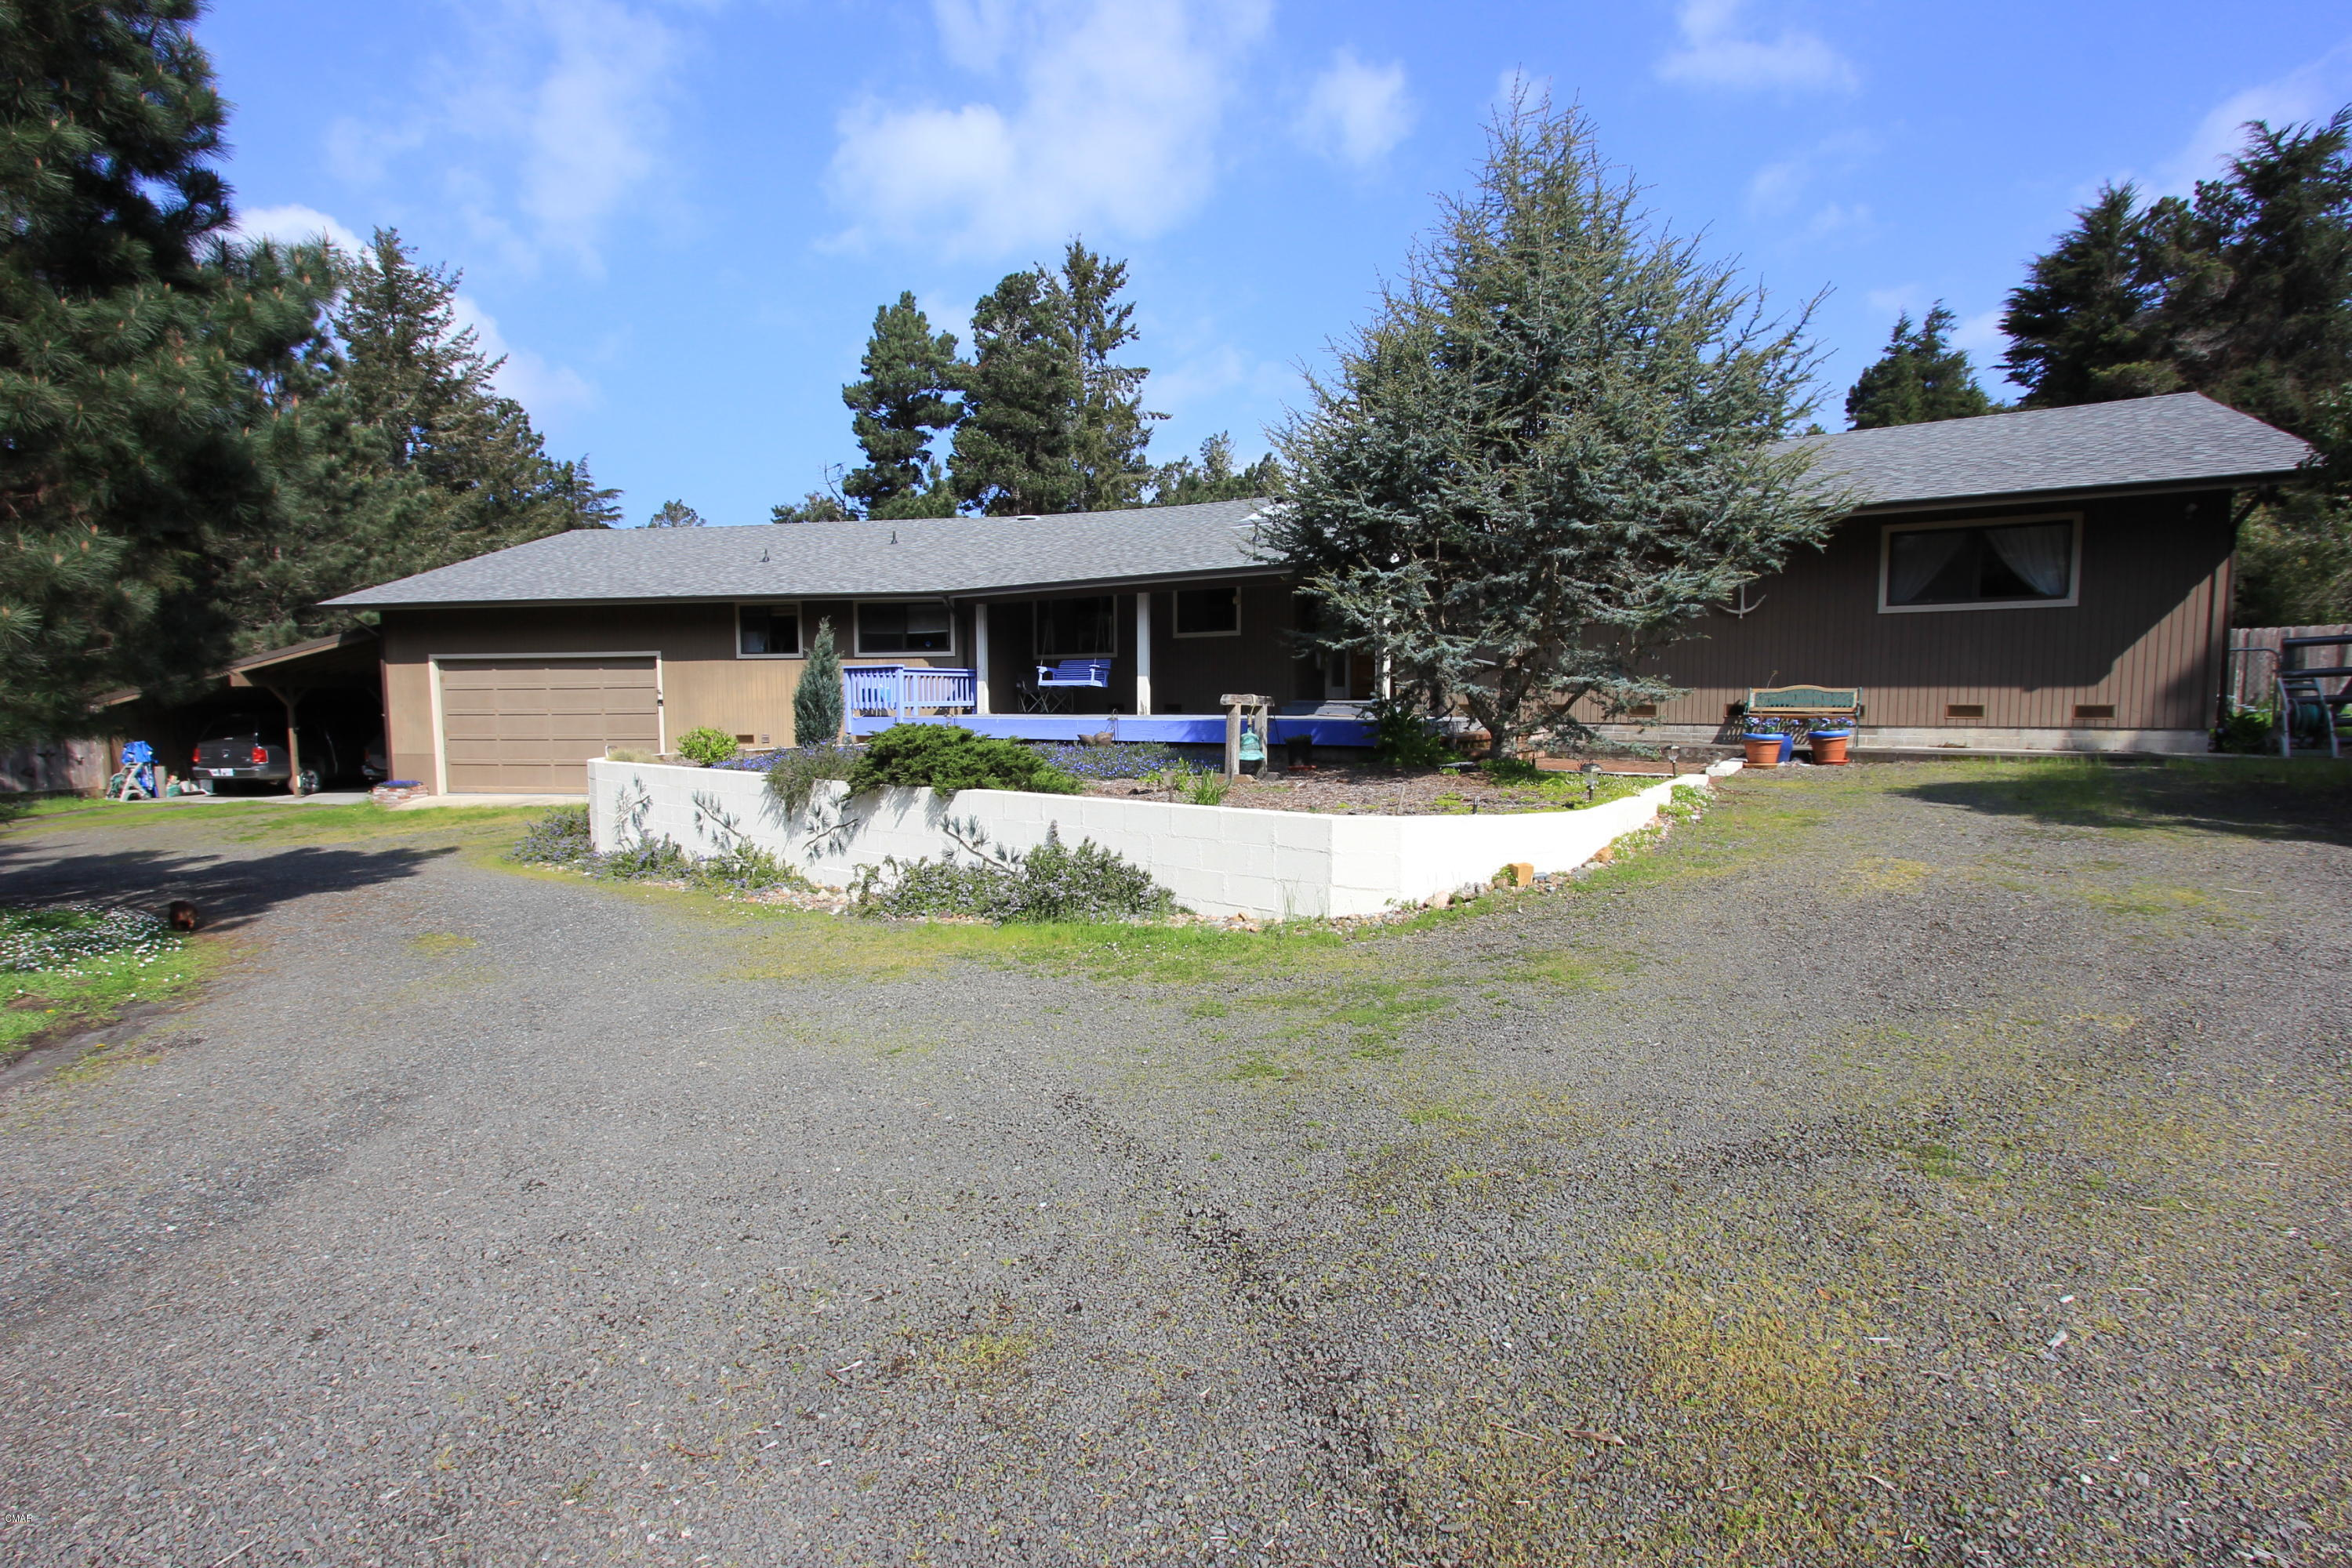 Single Family Home for Sale at 30594 Turner Road 30594 Turner Road Fort Bragg, California 95437 United States